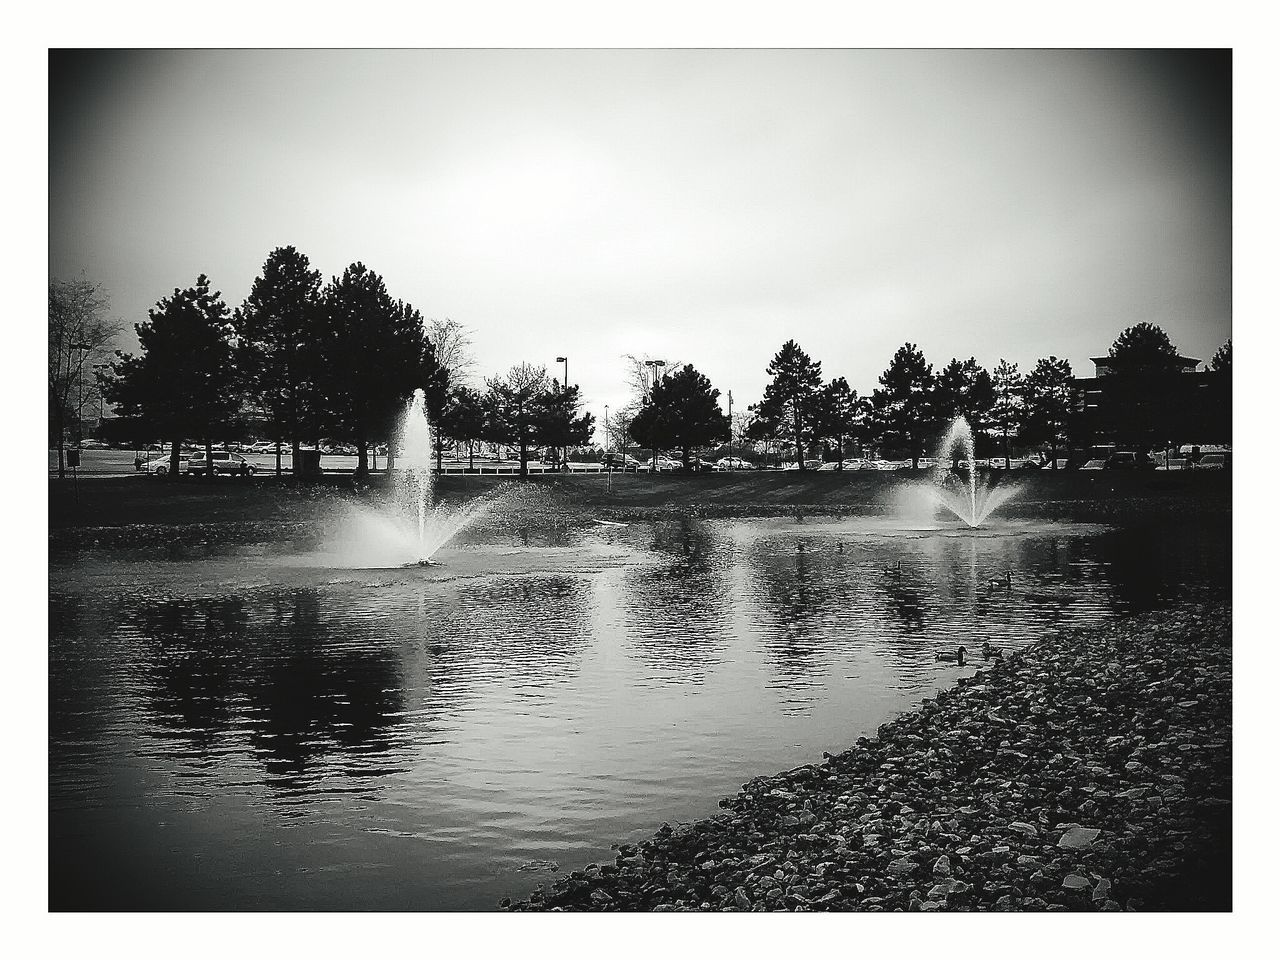 water, spraying, tree, motion, splashing, outdoors, nature, reflection, day, real people, lake, beauty in nature, sky, irrigation equipment